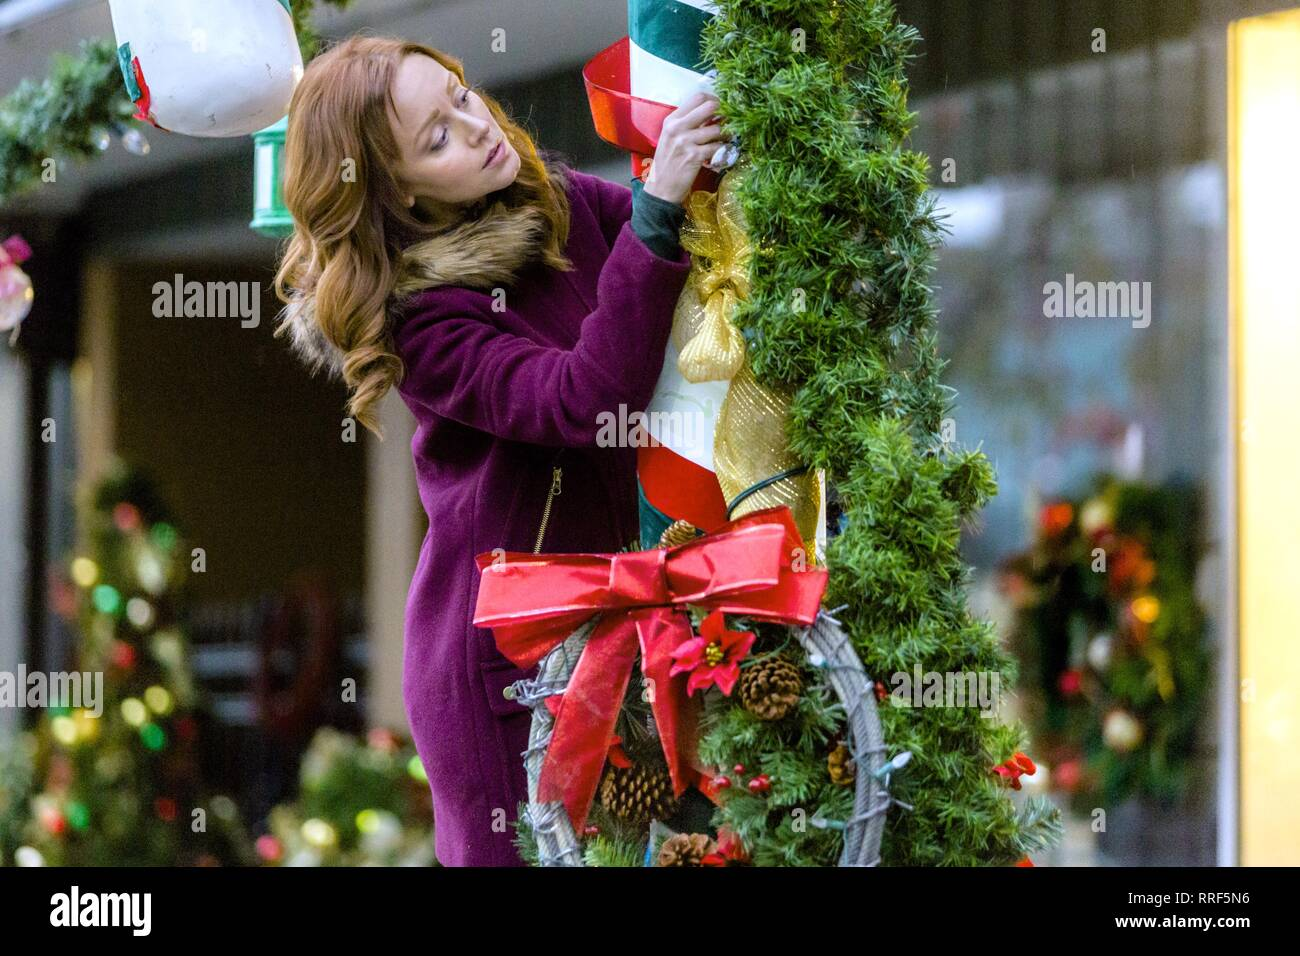 ROCKY MOUNTAIN NATALE, LINDY Booth, 2017 Immagini Stock